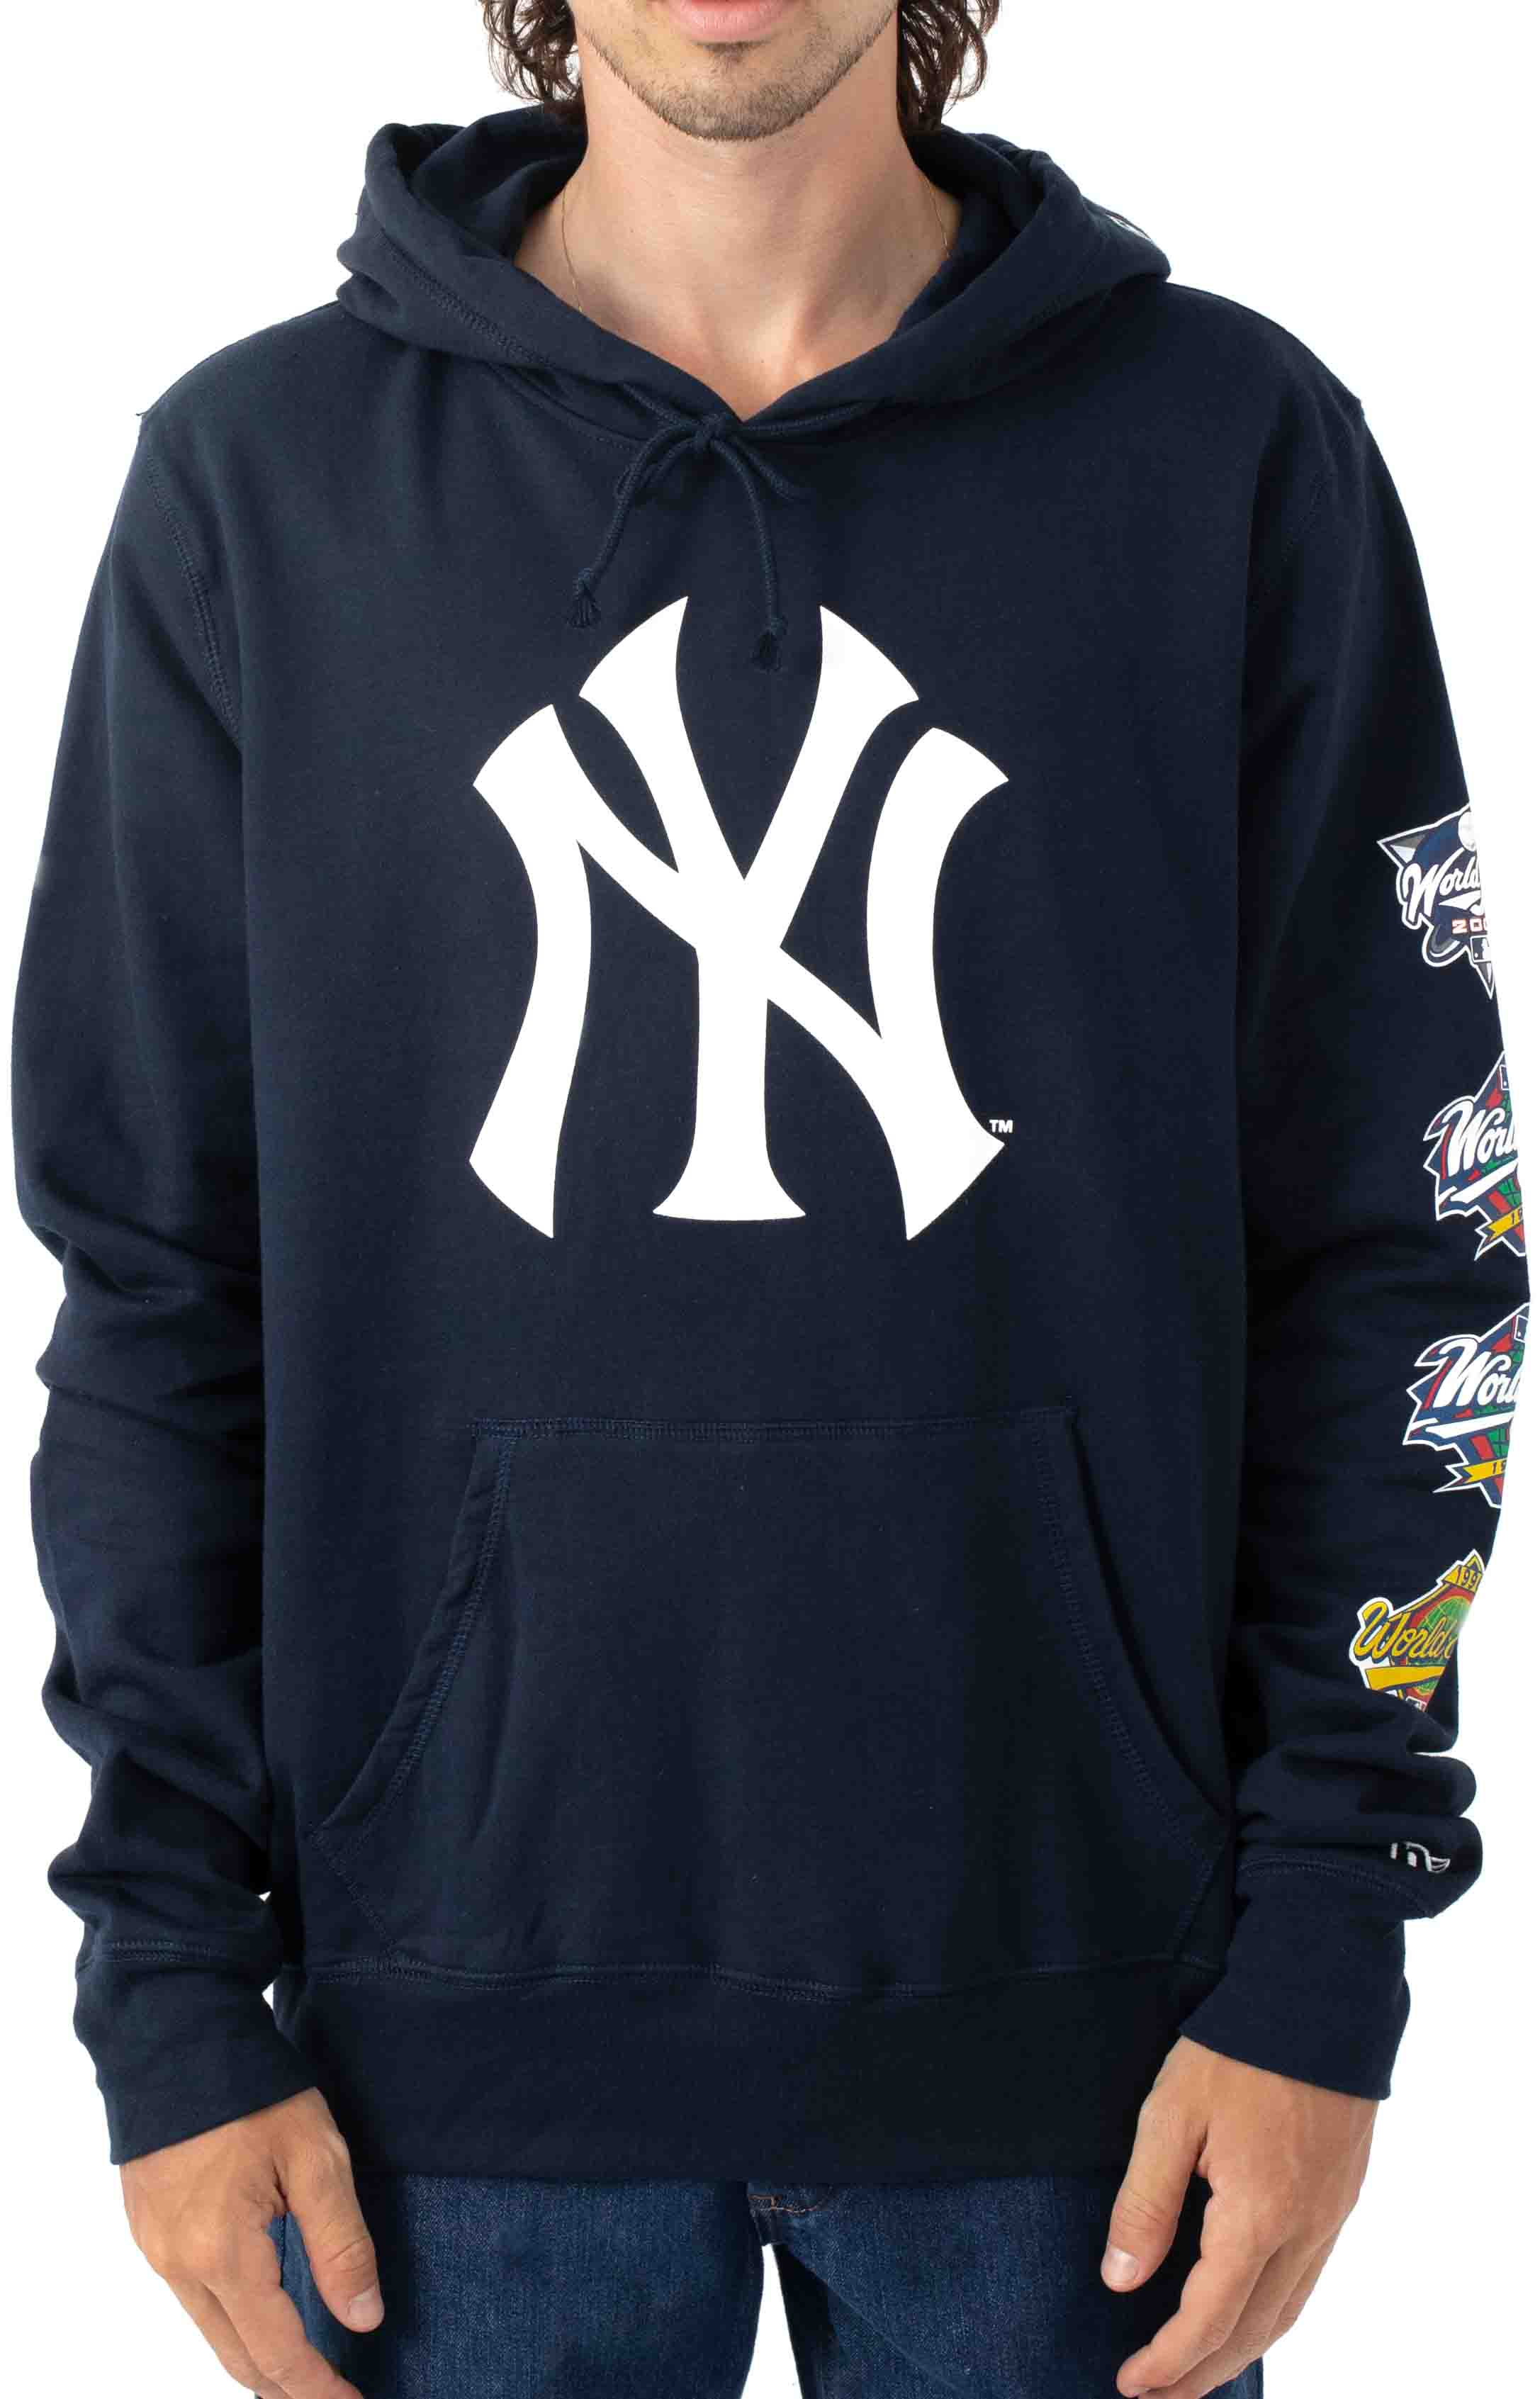 NY Yankees World Champions Pullover Hoodie - Navy